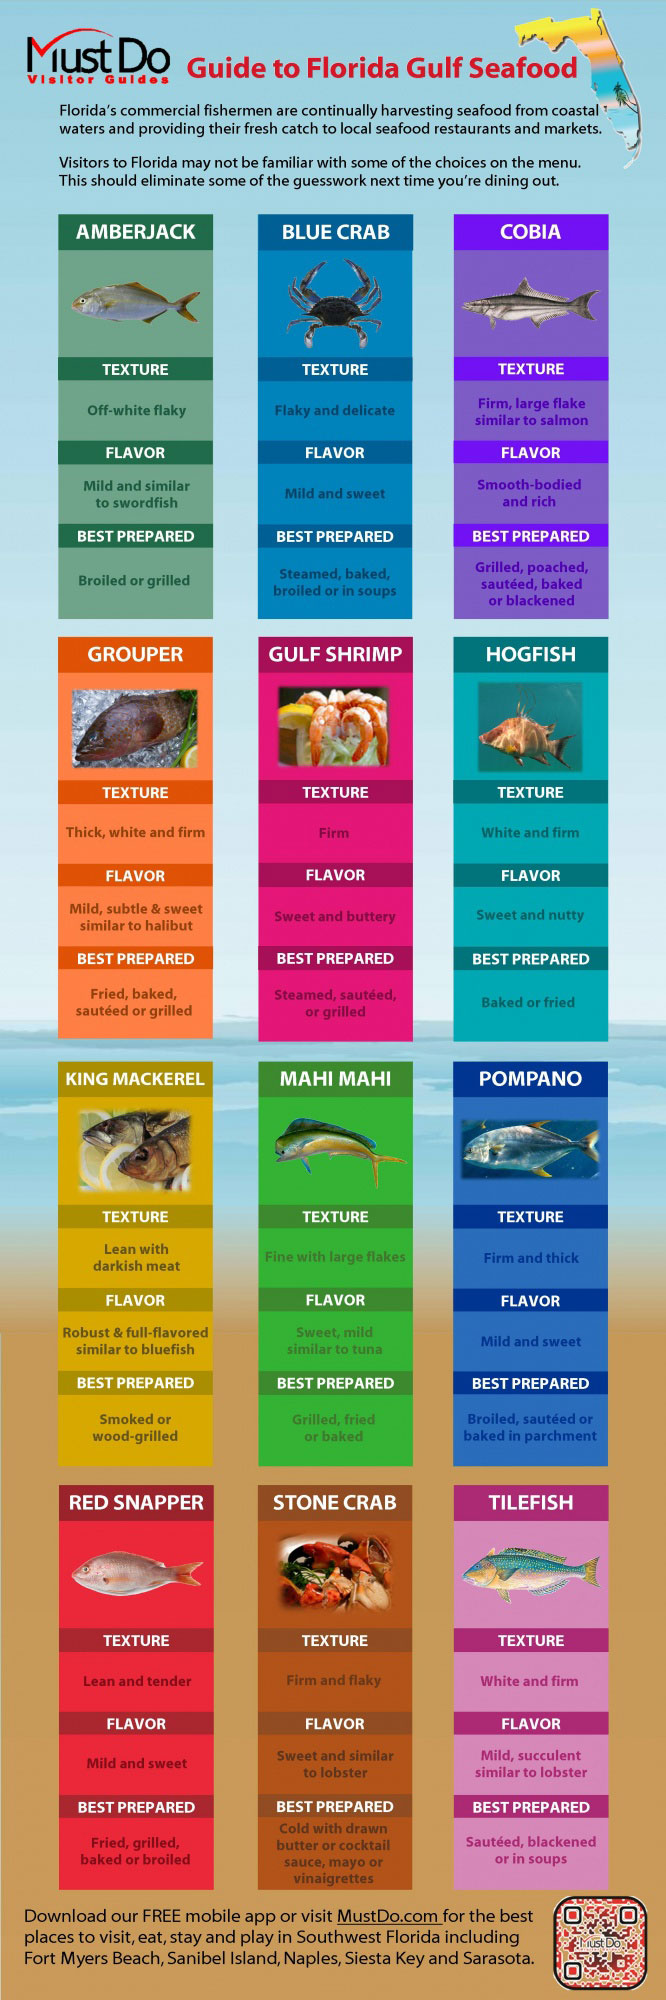 MustDo.com | Must Do Visitor Guides, a guide to Florida Gulf Seafood and Fish infographic.